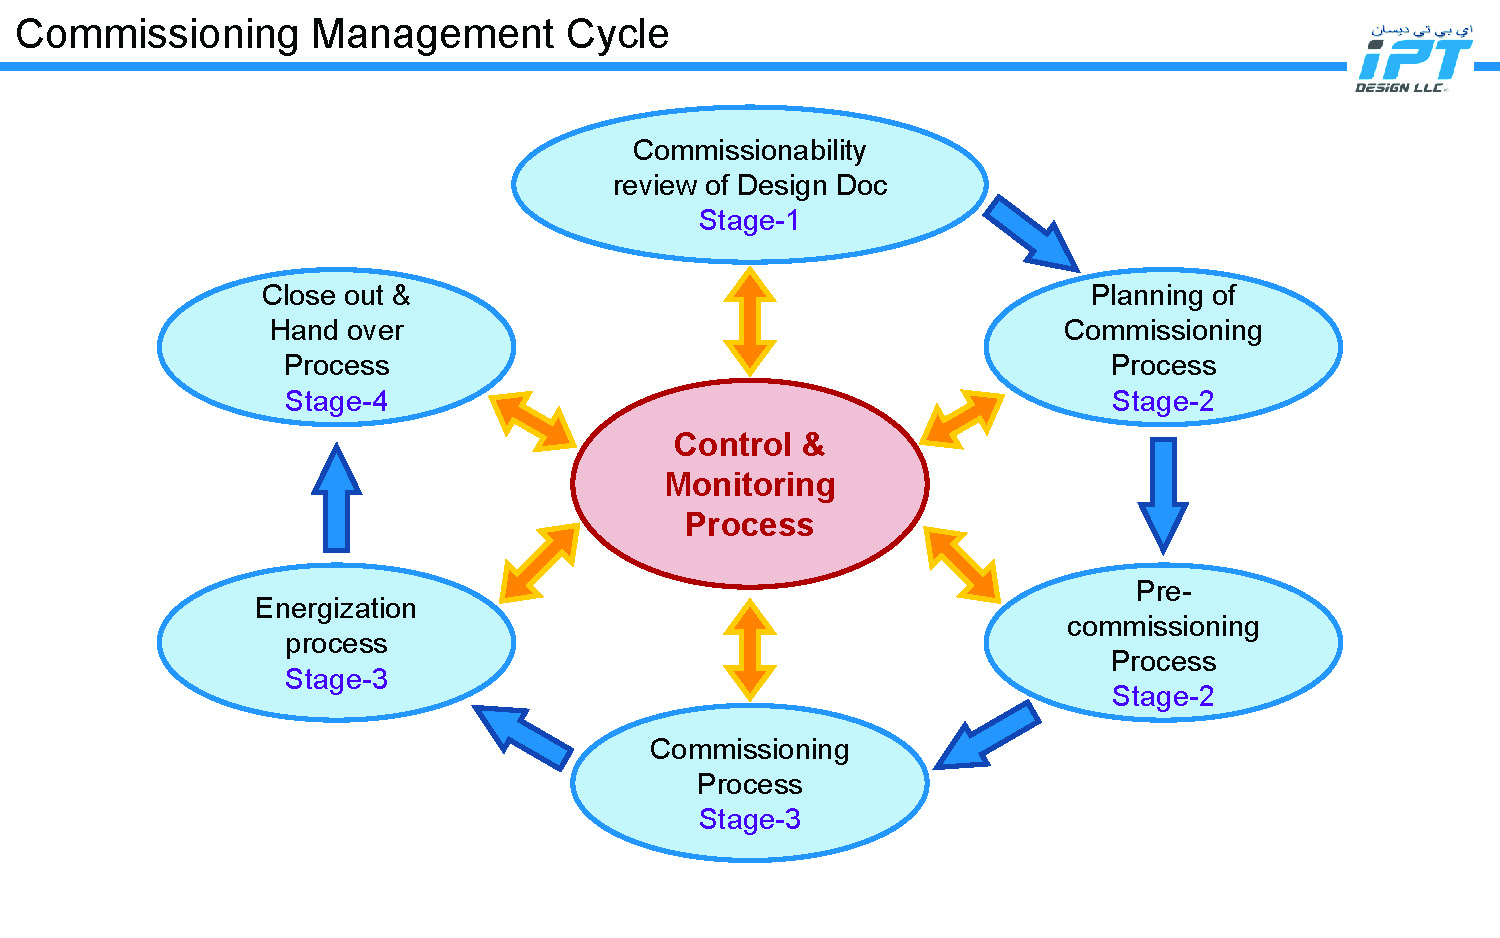 IPT Design LLC - Commissioning Management Process_Page_04.jpg